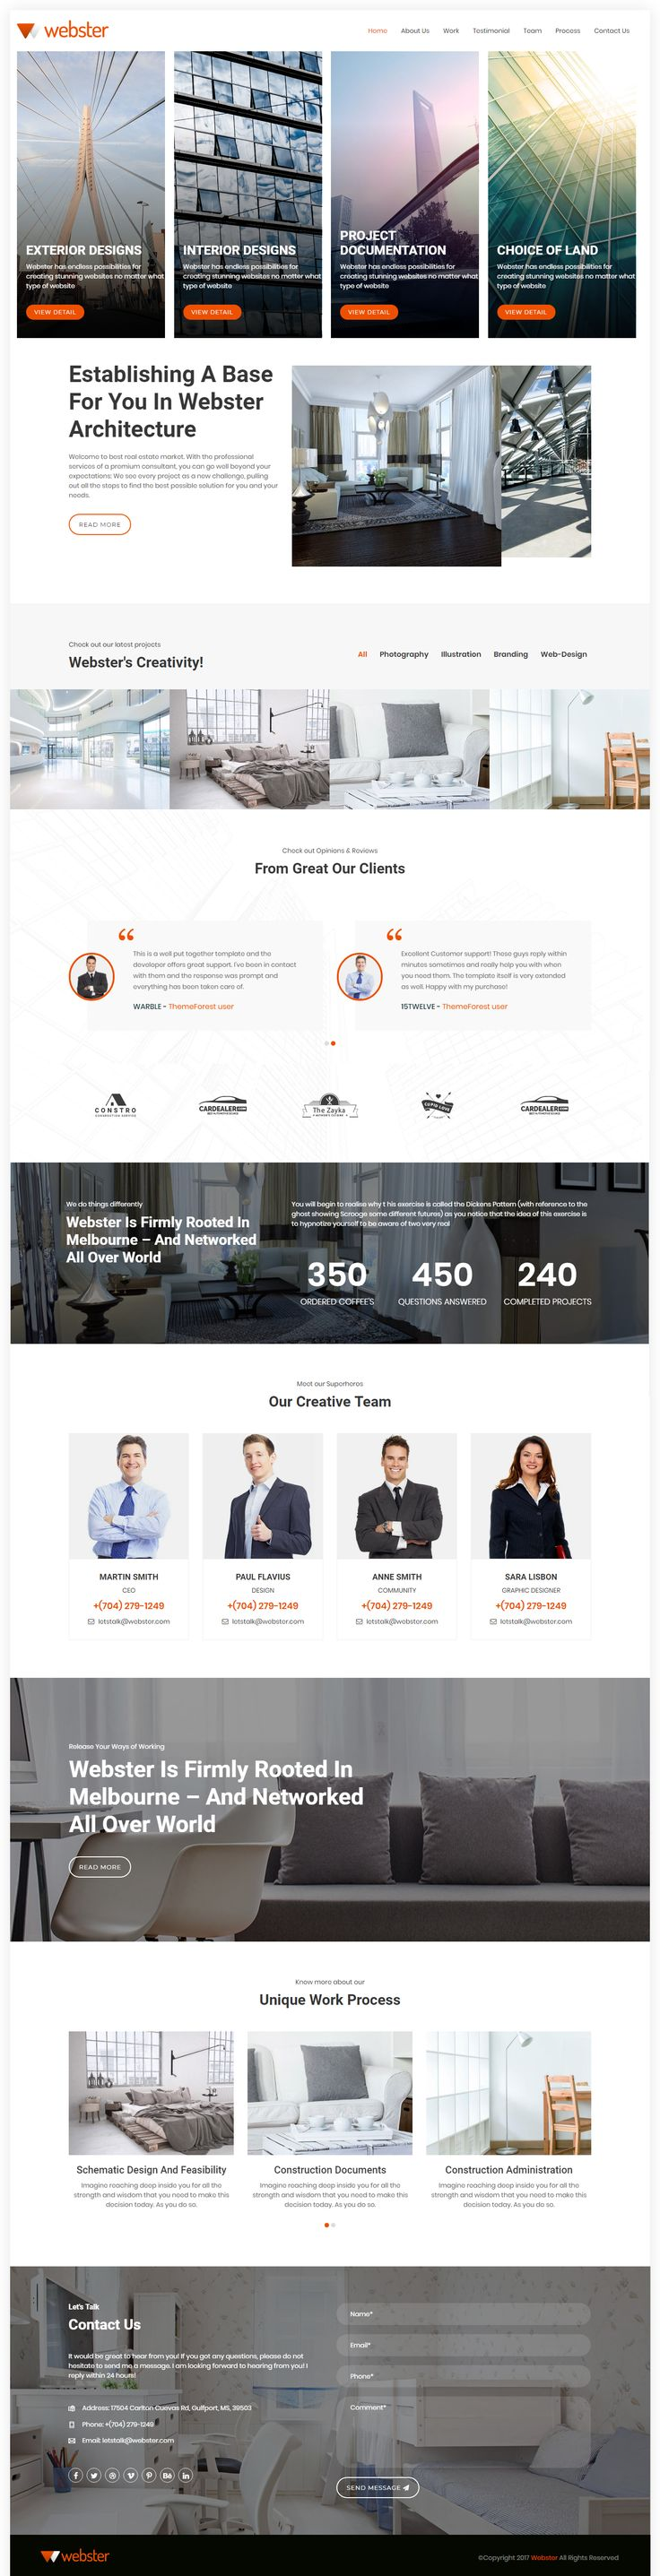 The Webster HTML5 template has a well structured